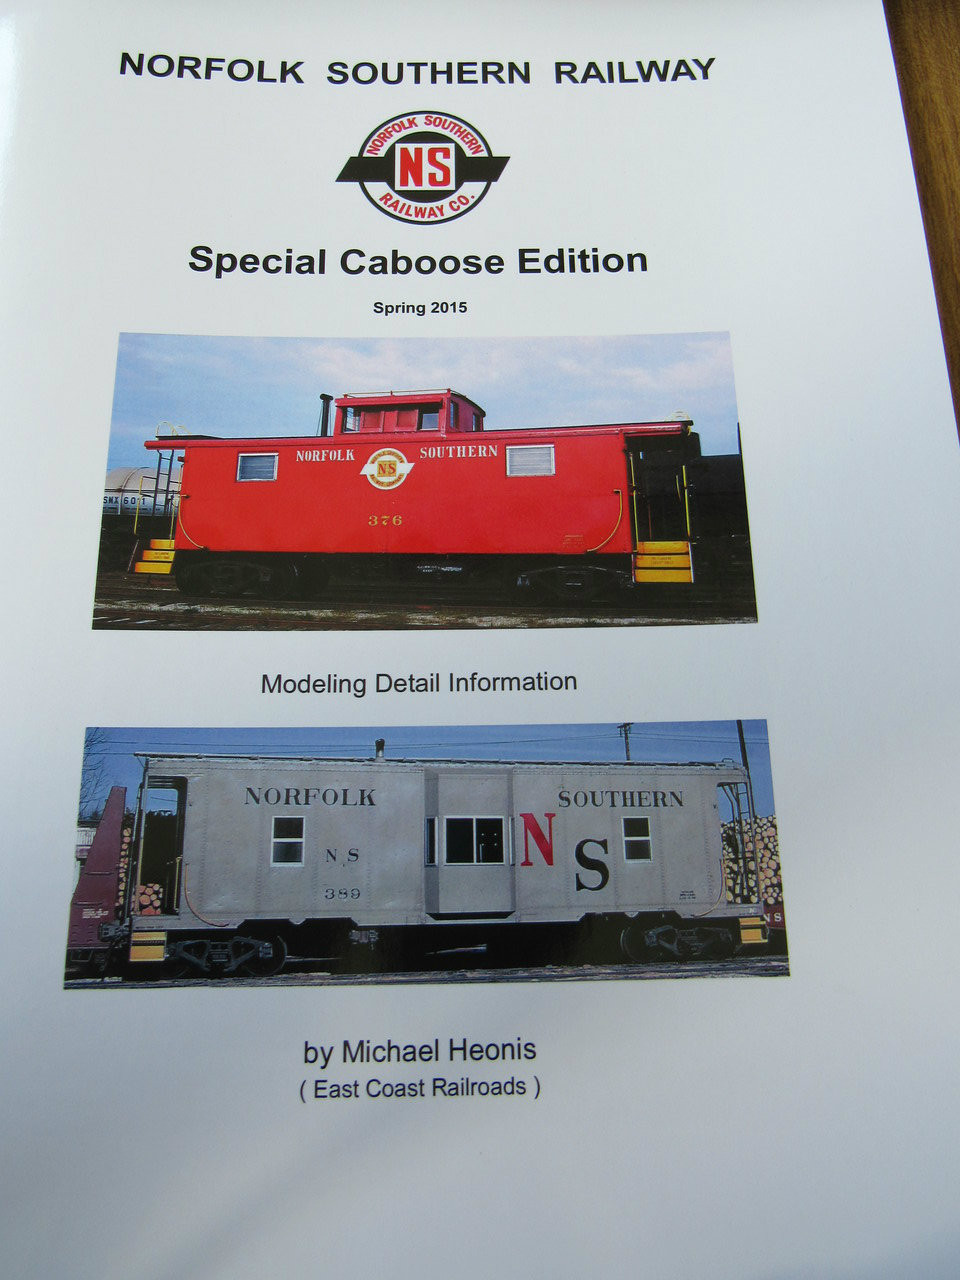 Norfolk Southern railway Special Caboose Edition Spring 2015